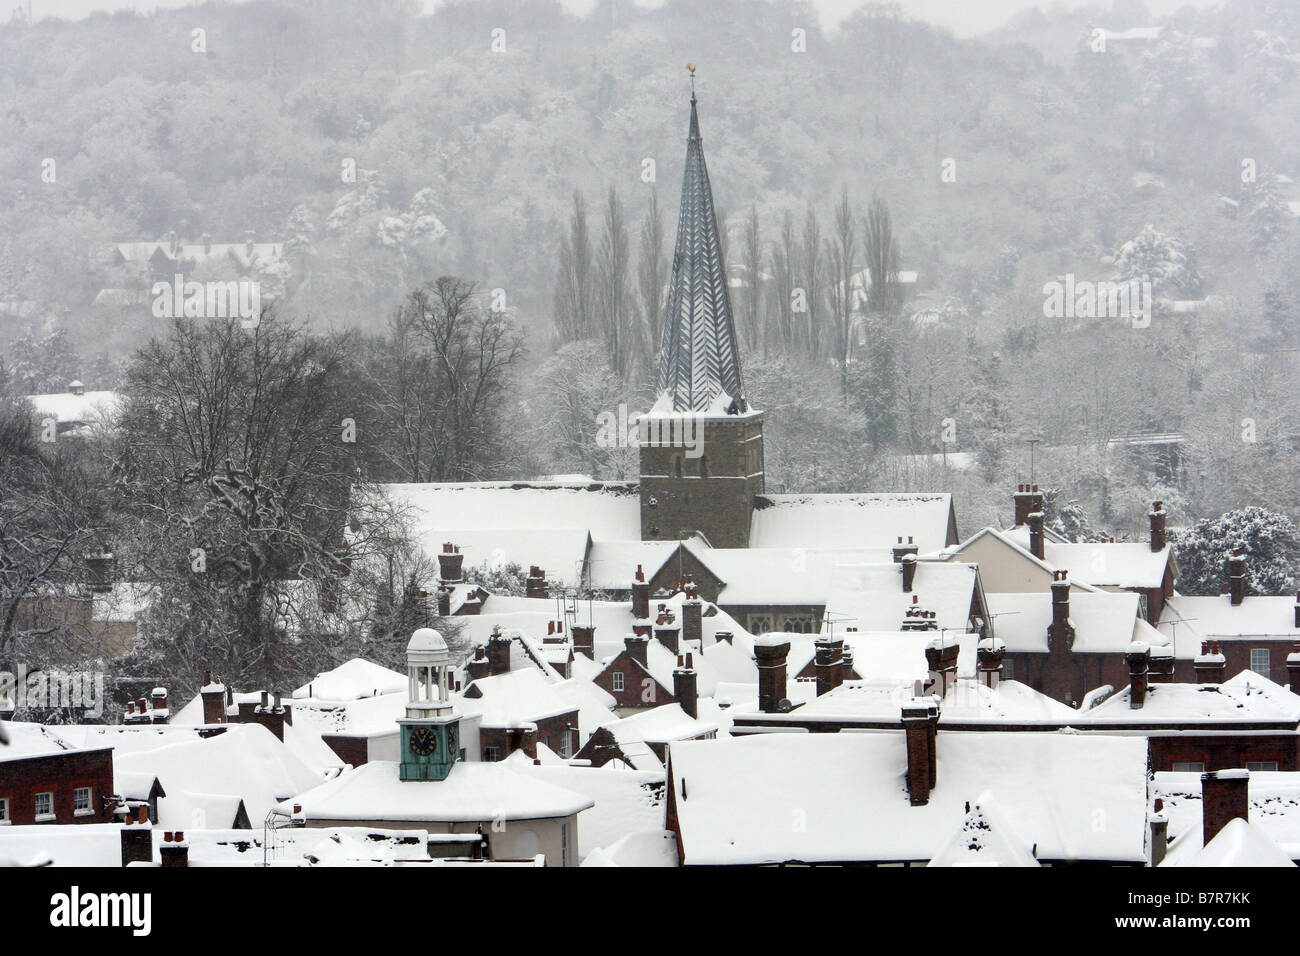 Snow covers the town of Godalming, England - Stock Image